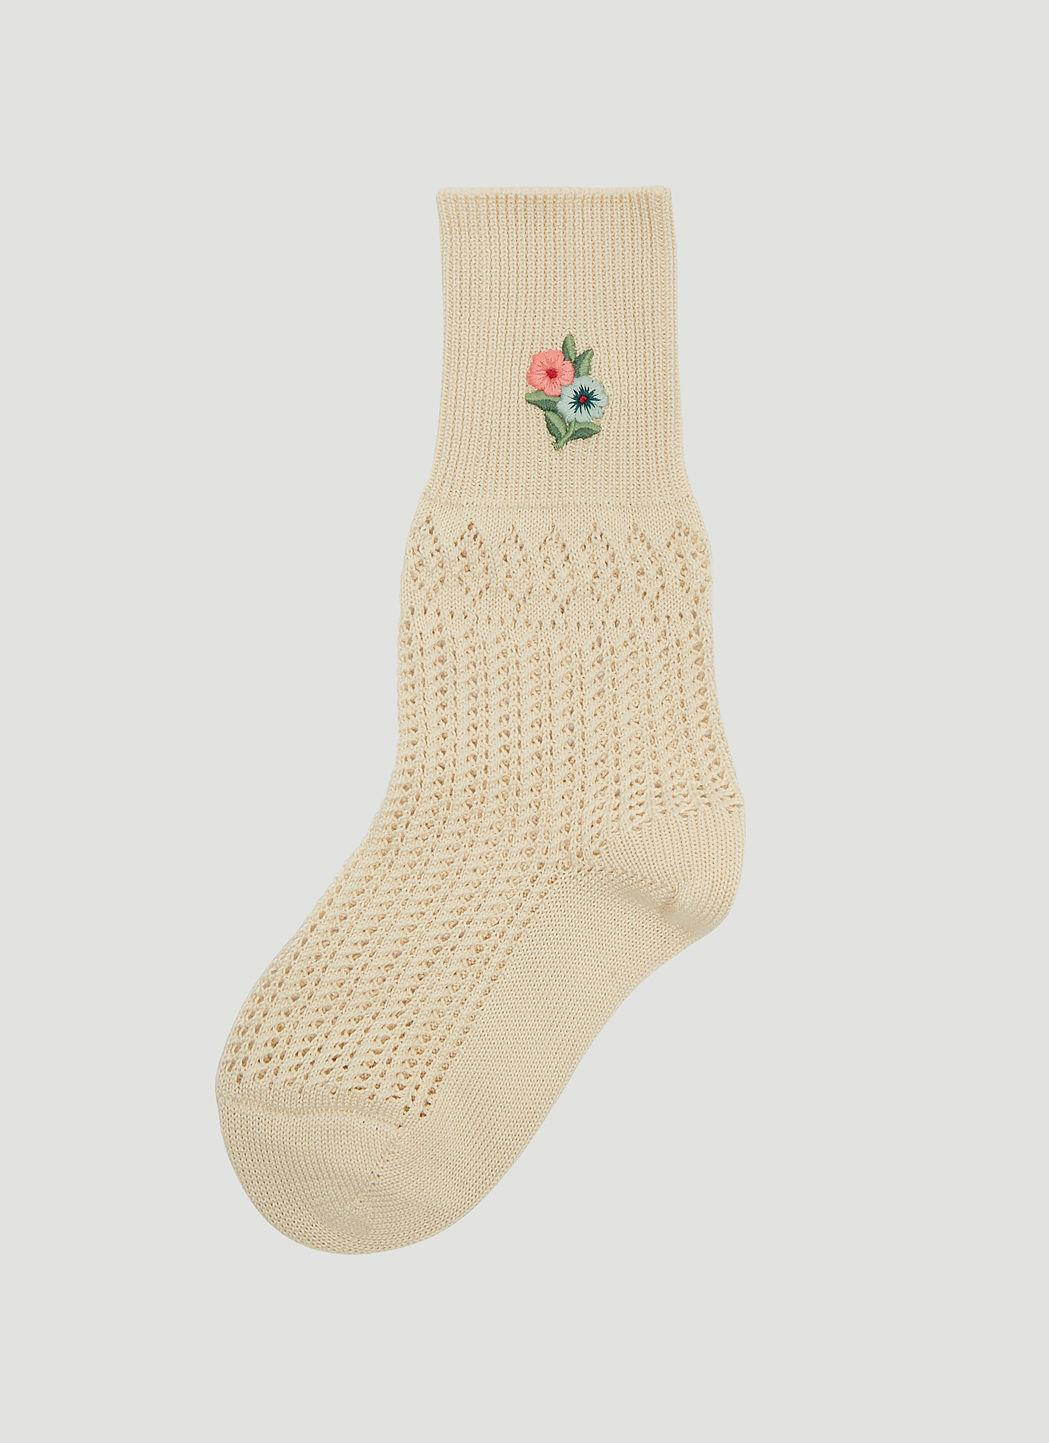 694decd38a1 Gucci Floral Embroidered Crochet Socks In Beige